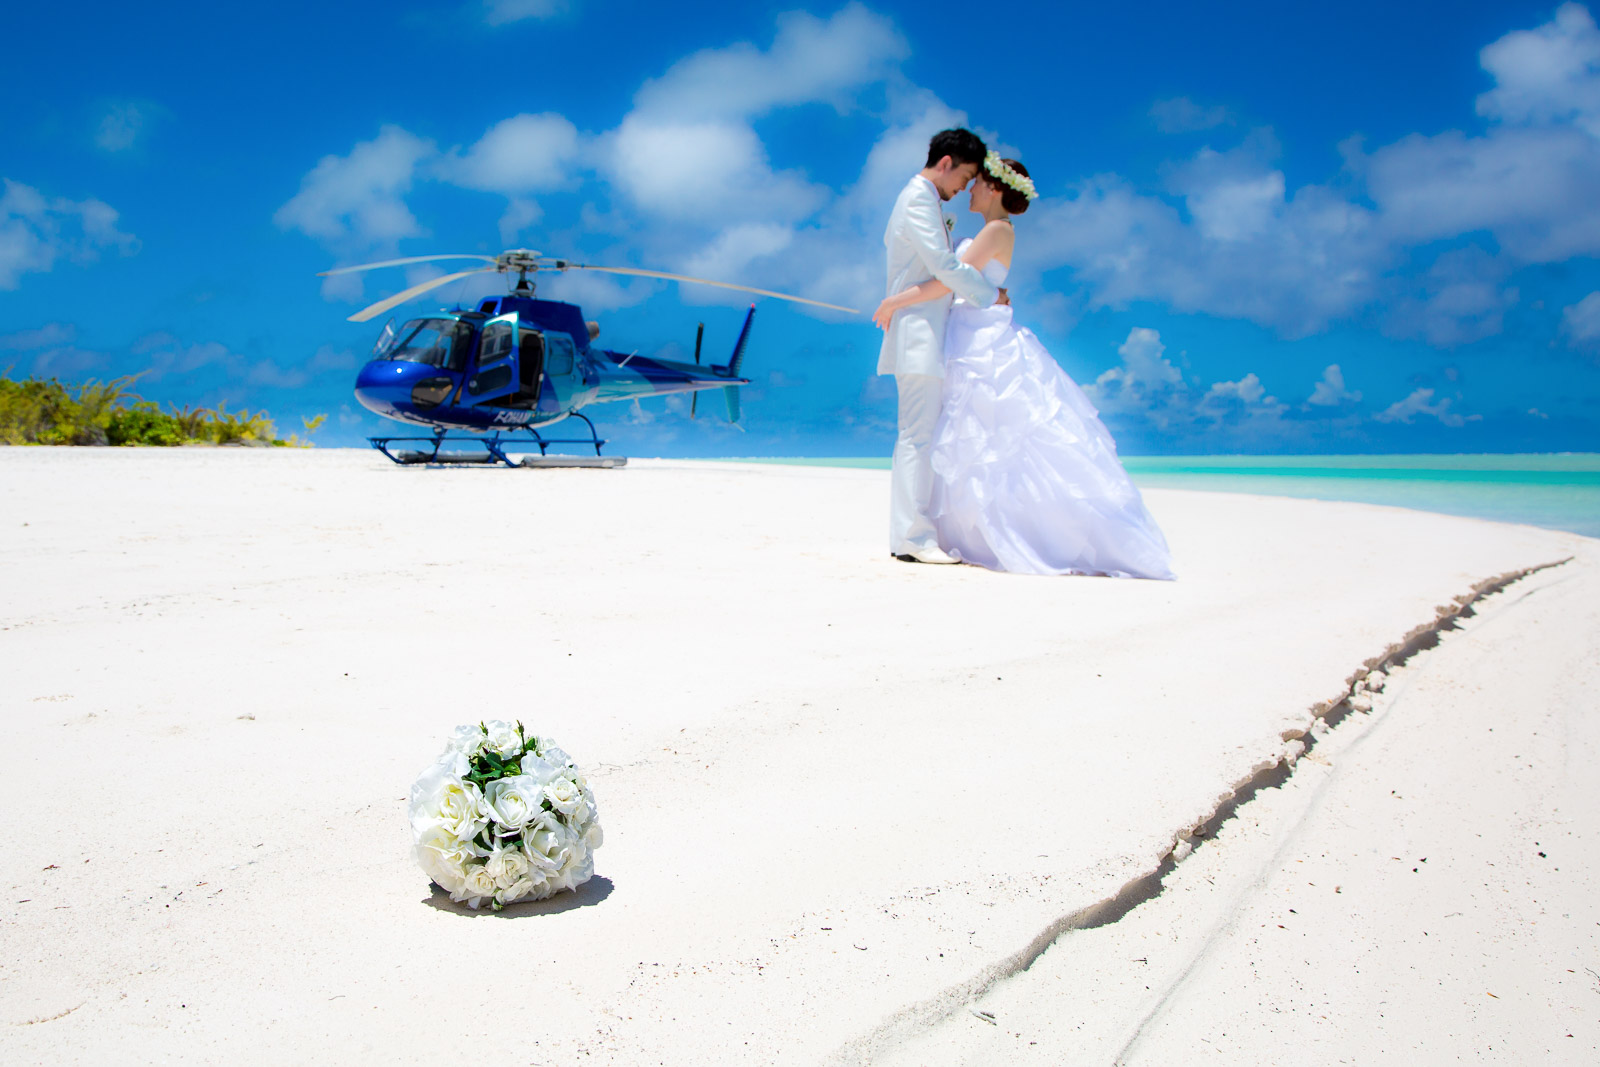 Bora Bora Photographer Stephan & Bonnie | 100% Positive reviews! | Tupai Photo-Shoot with Tahiti Nui Helicopter | May 12, 2021